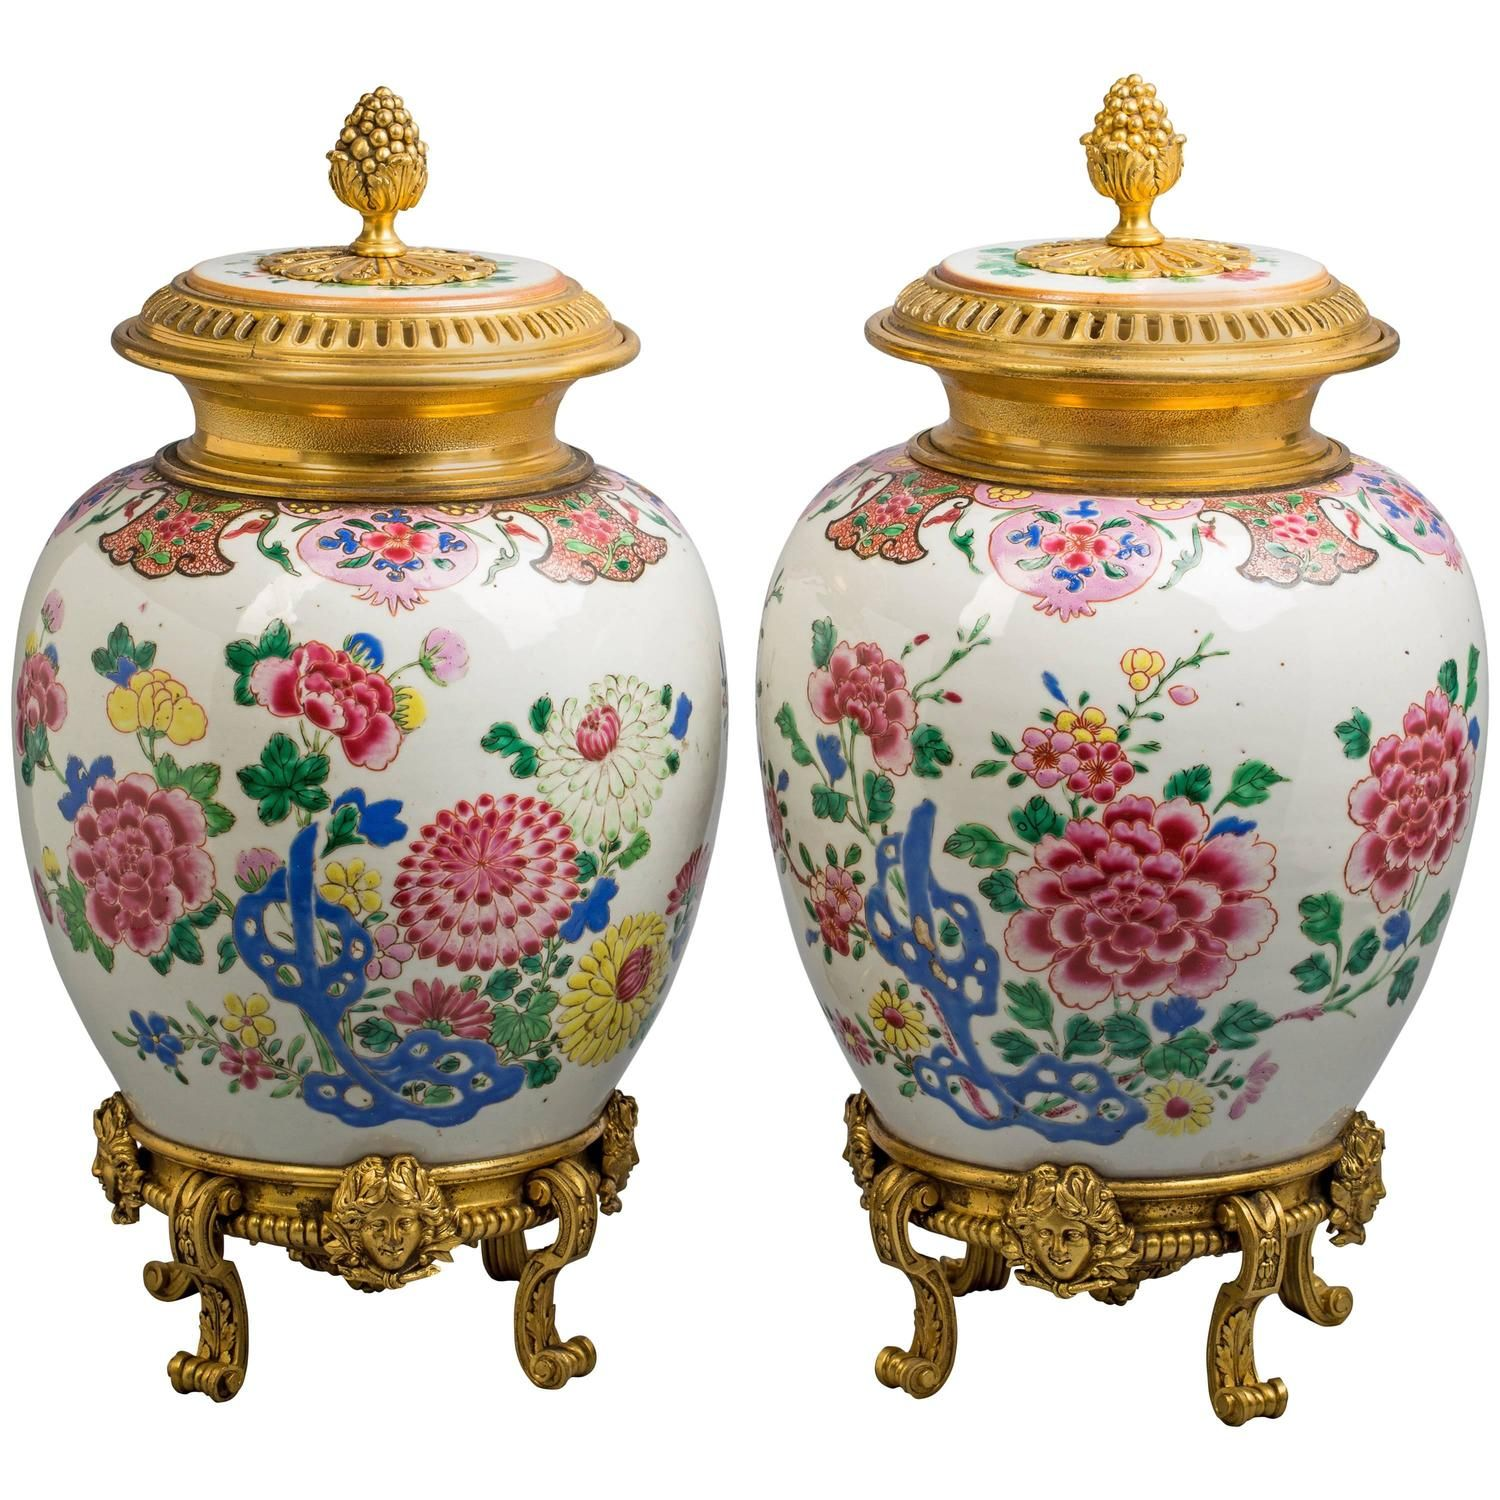 Pair of bronze mounted chinese porcelain covered vases circa 1800 pair of bronze mounted chinese porcelain covered vases circa 1800 floridaeventfo Choice Image